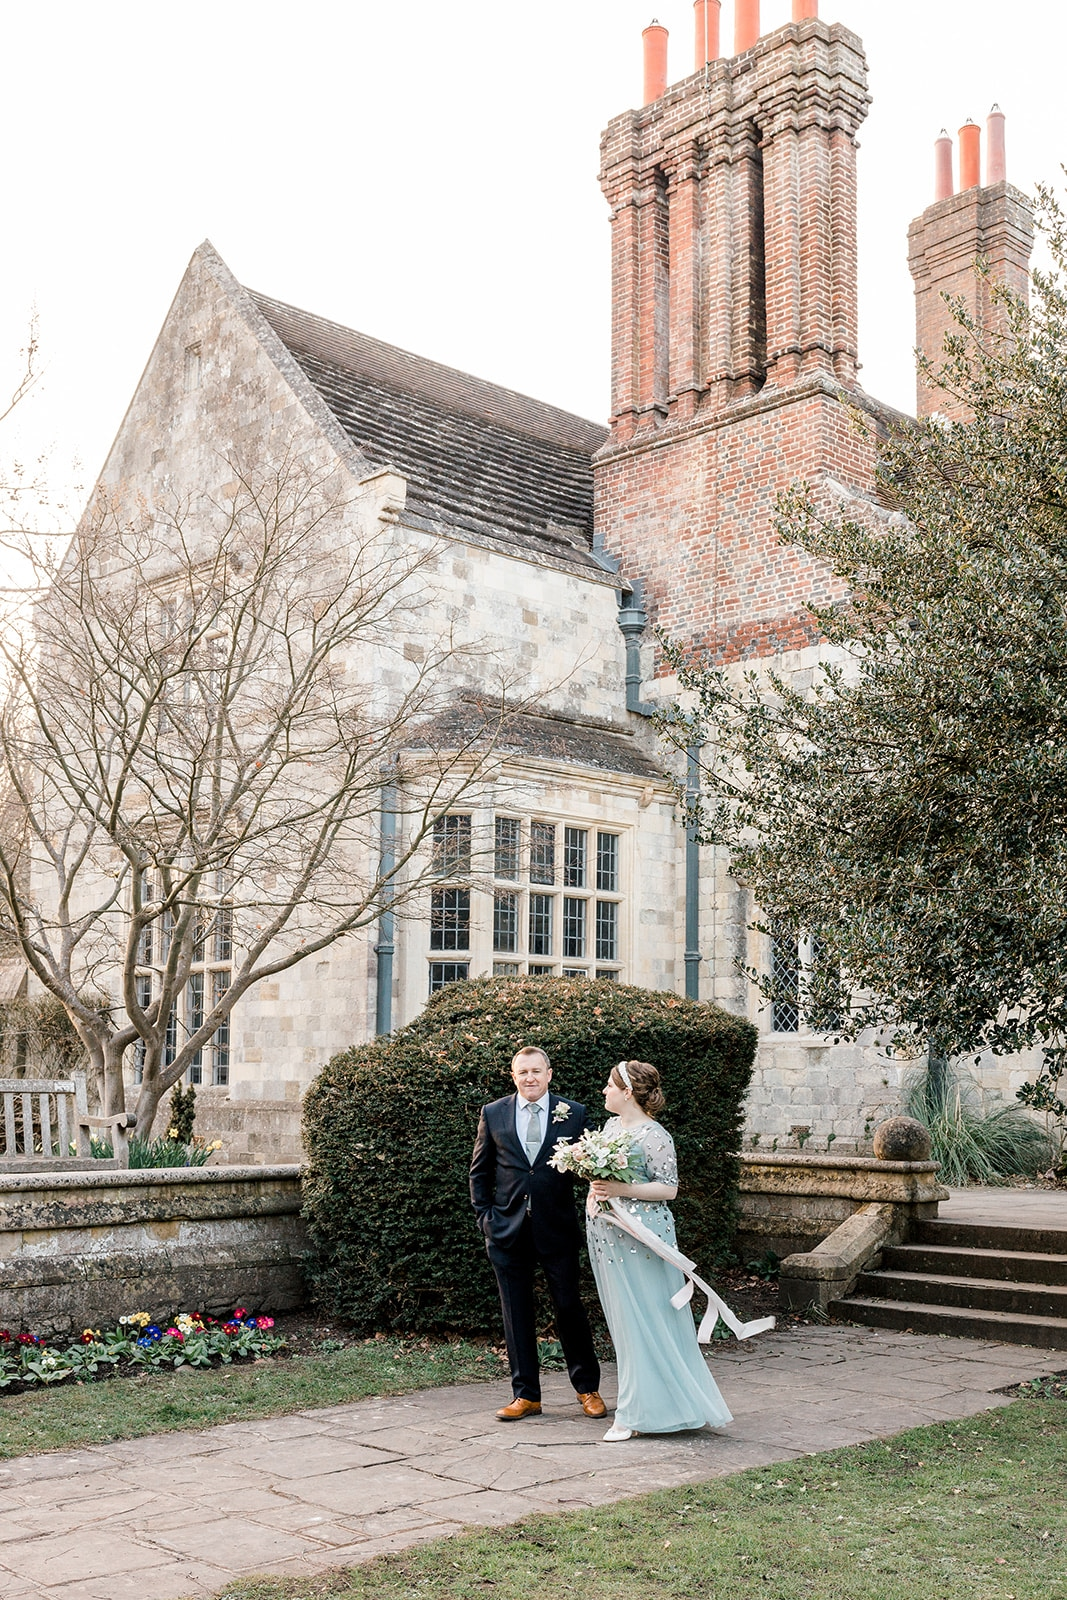 Lewes Registry Office wedding photos at Southover Grange